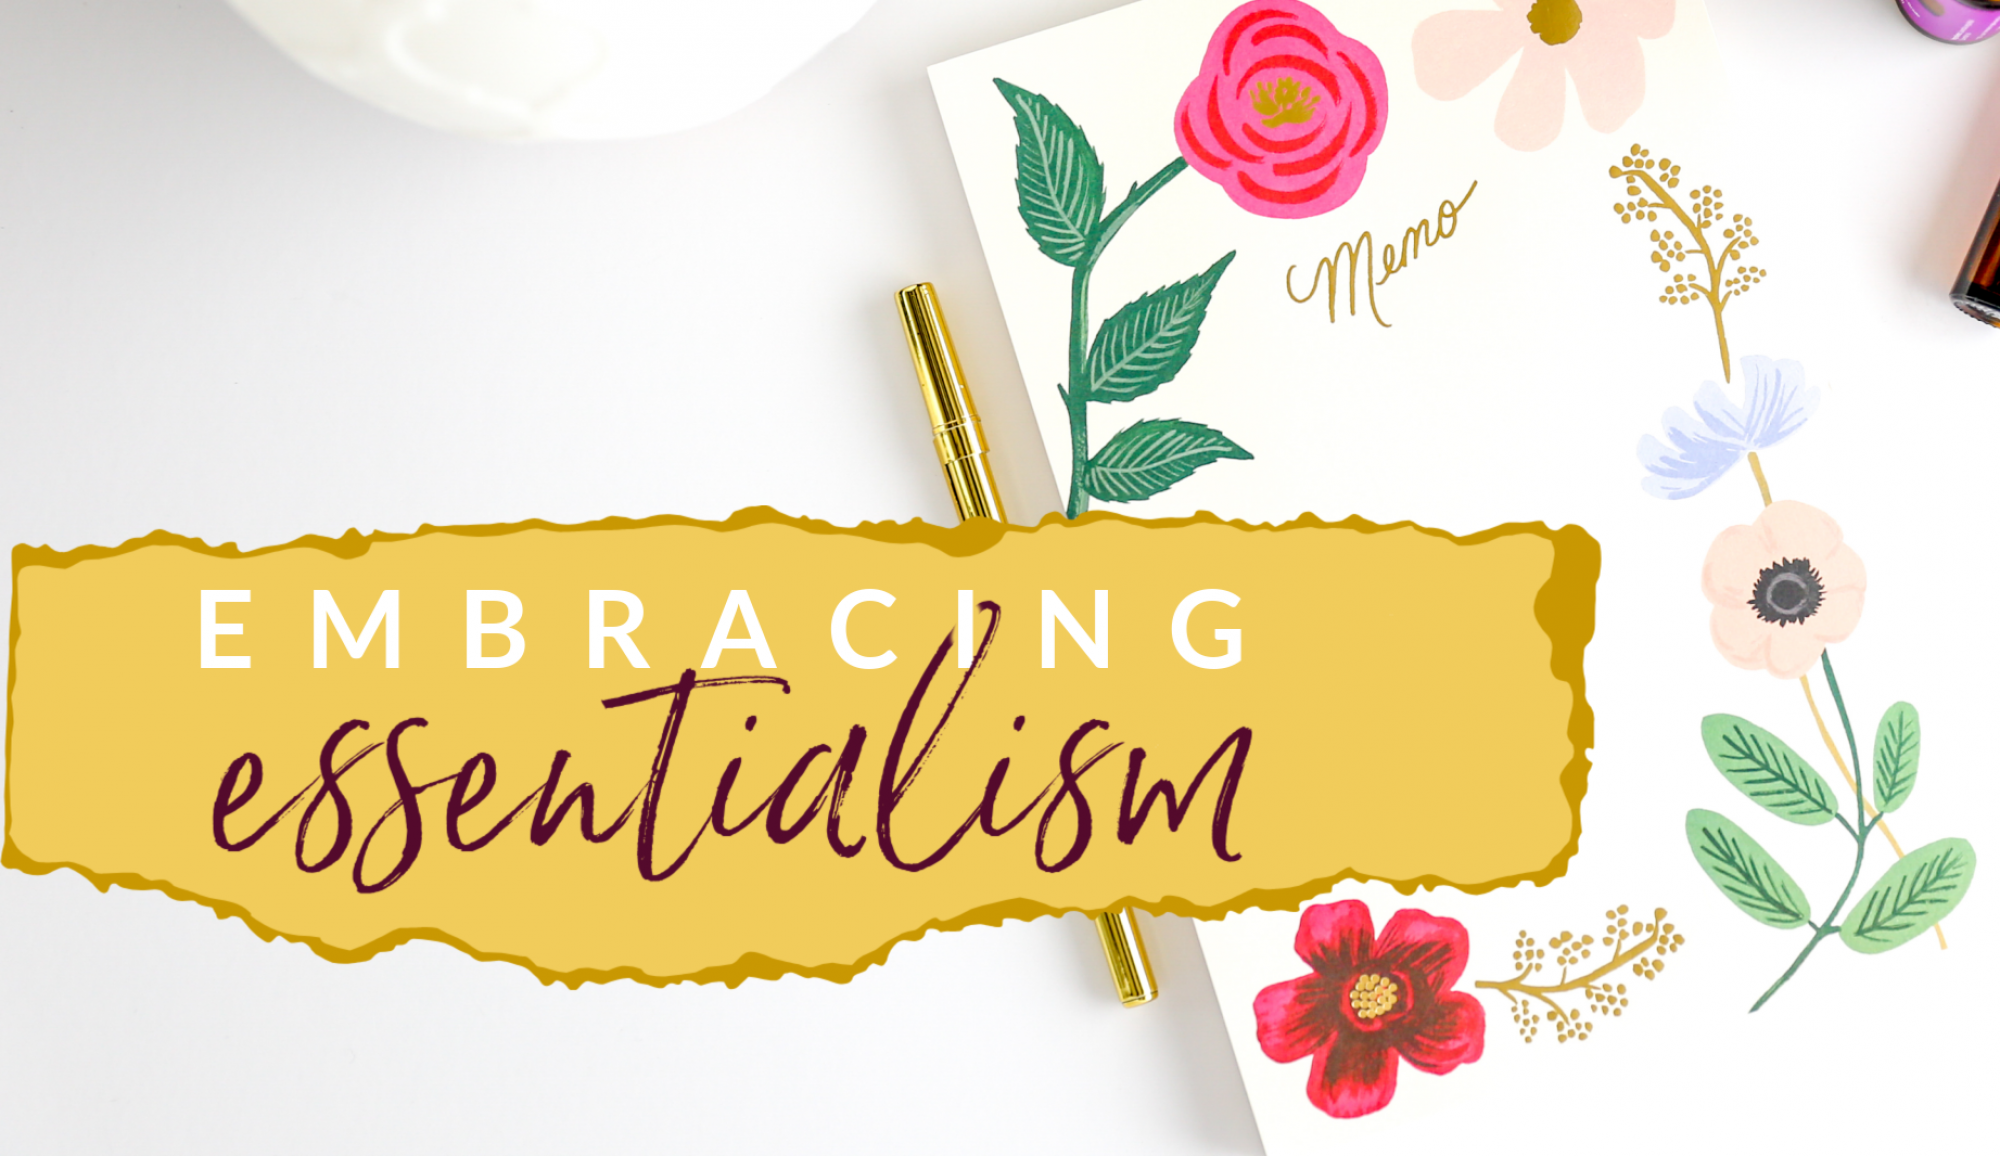 embracing essentialism